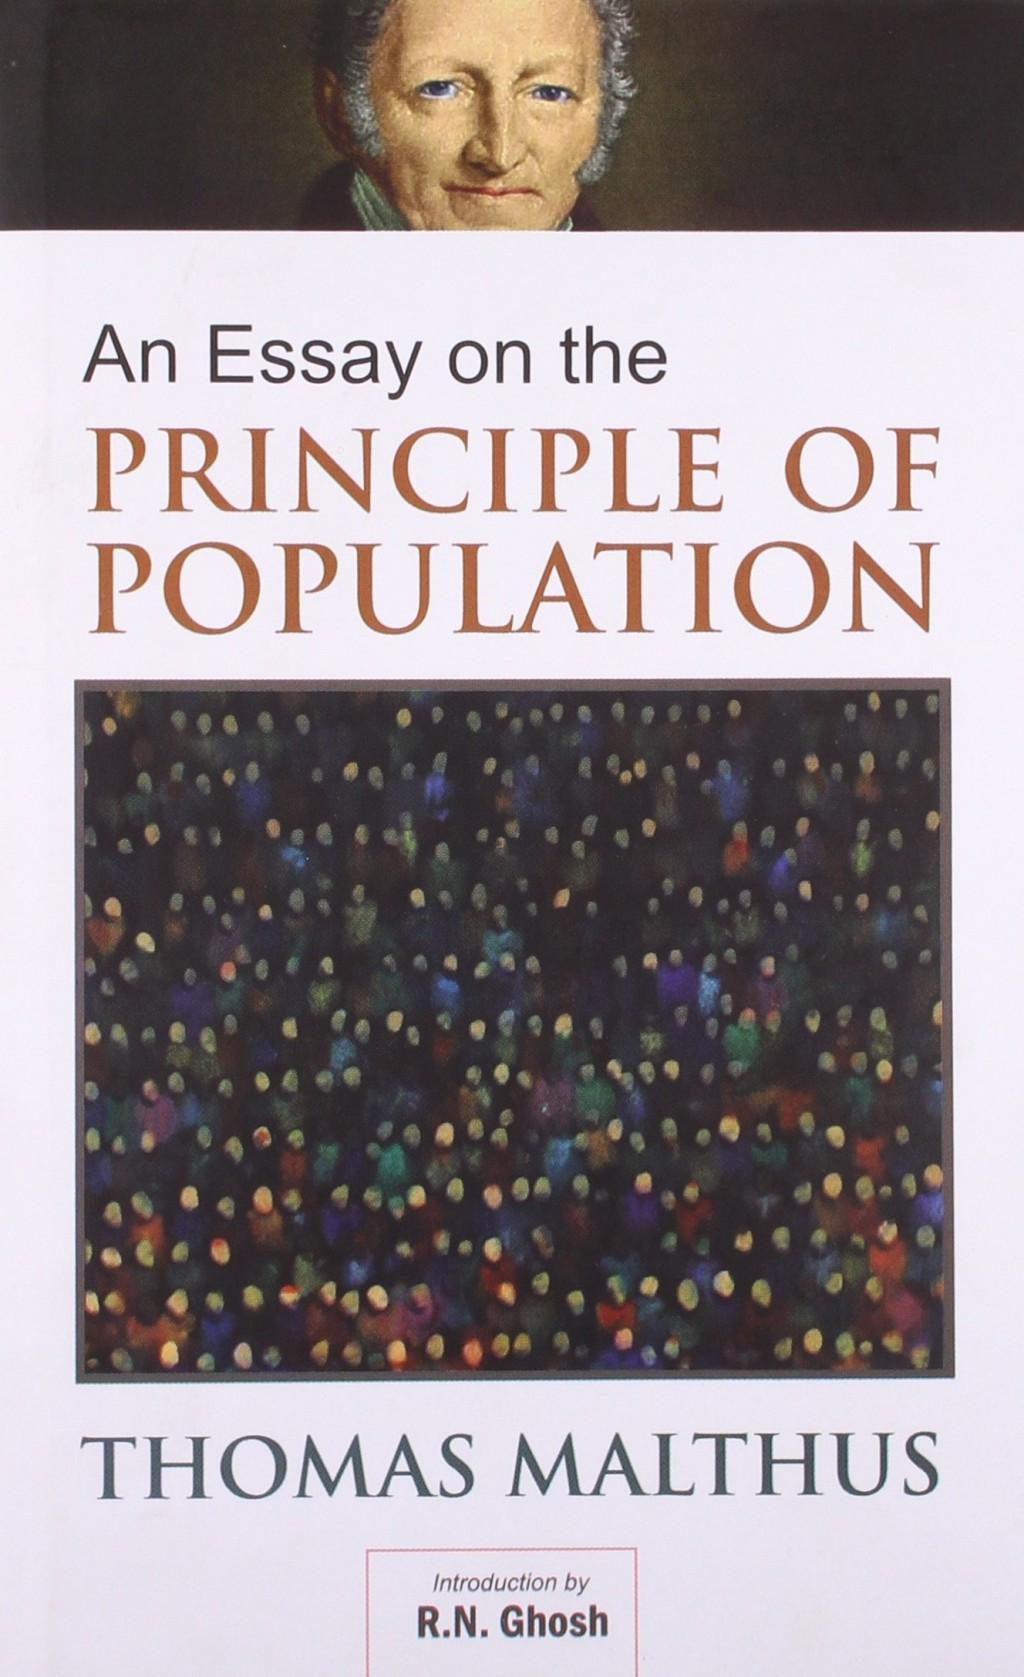 009 An Essay On The Principle Of Population Example Fascinating By Thomas Malthus Pdf In Concluded Which Following Large